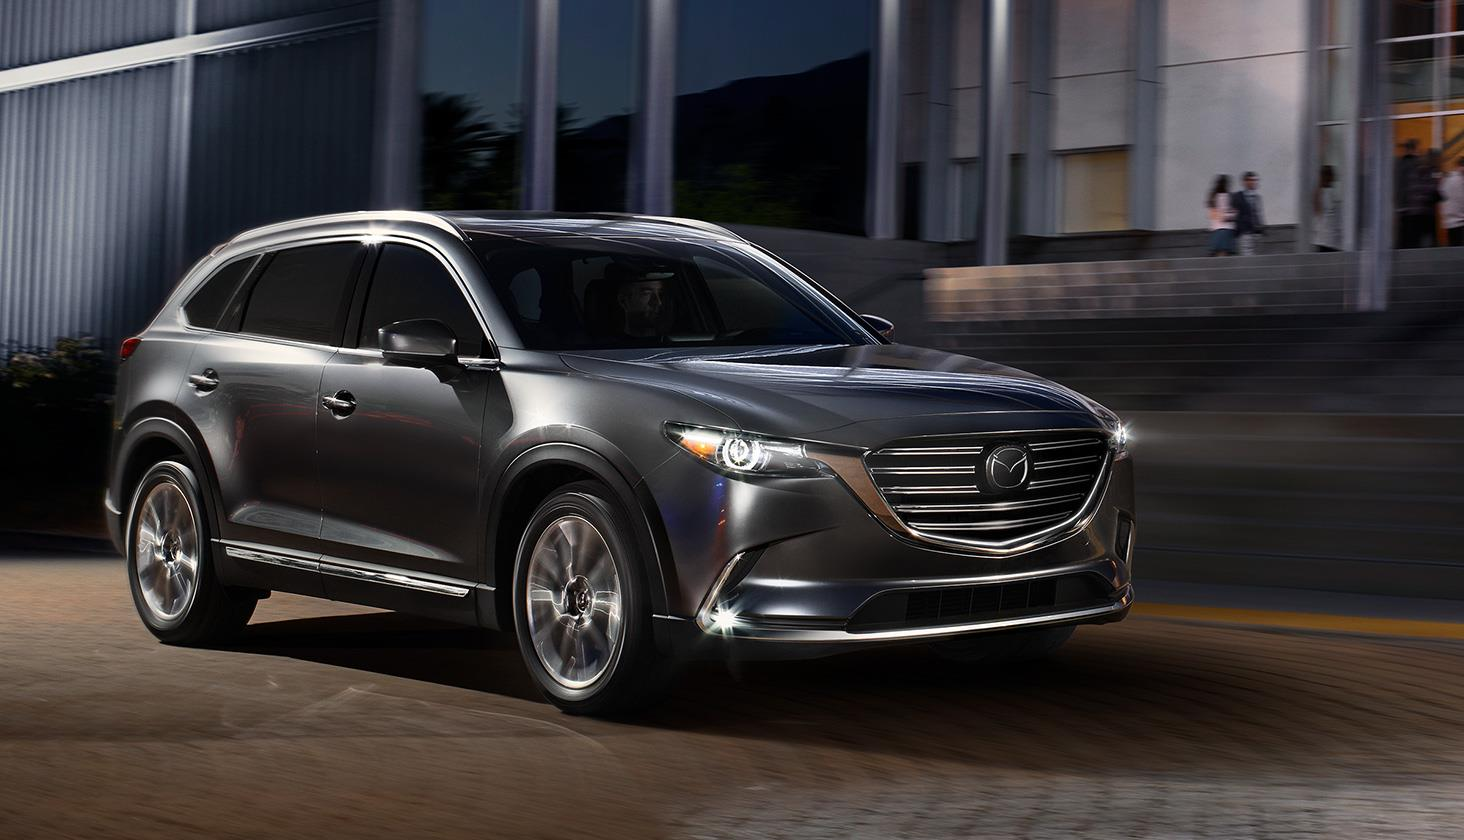 Mazda CX-9 Honored As Finalist For 2017 World Car Of The Year - CardinaleWay Mazda Las Vegas